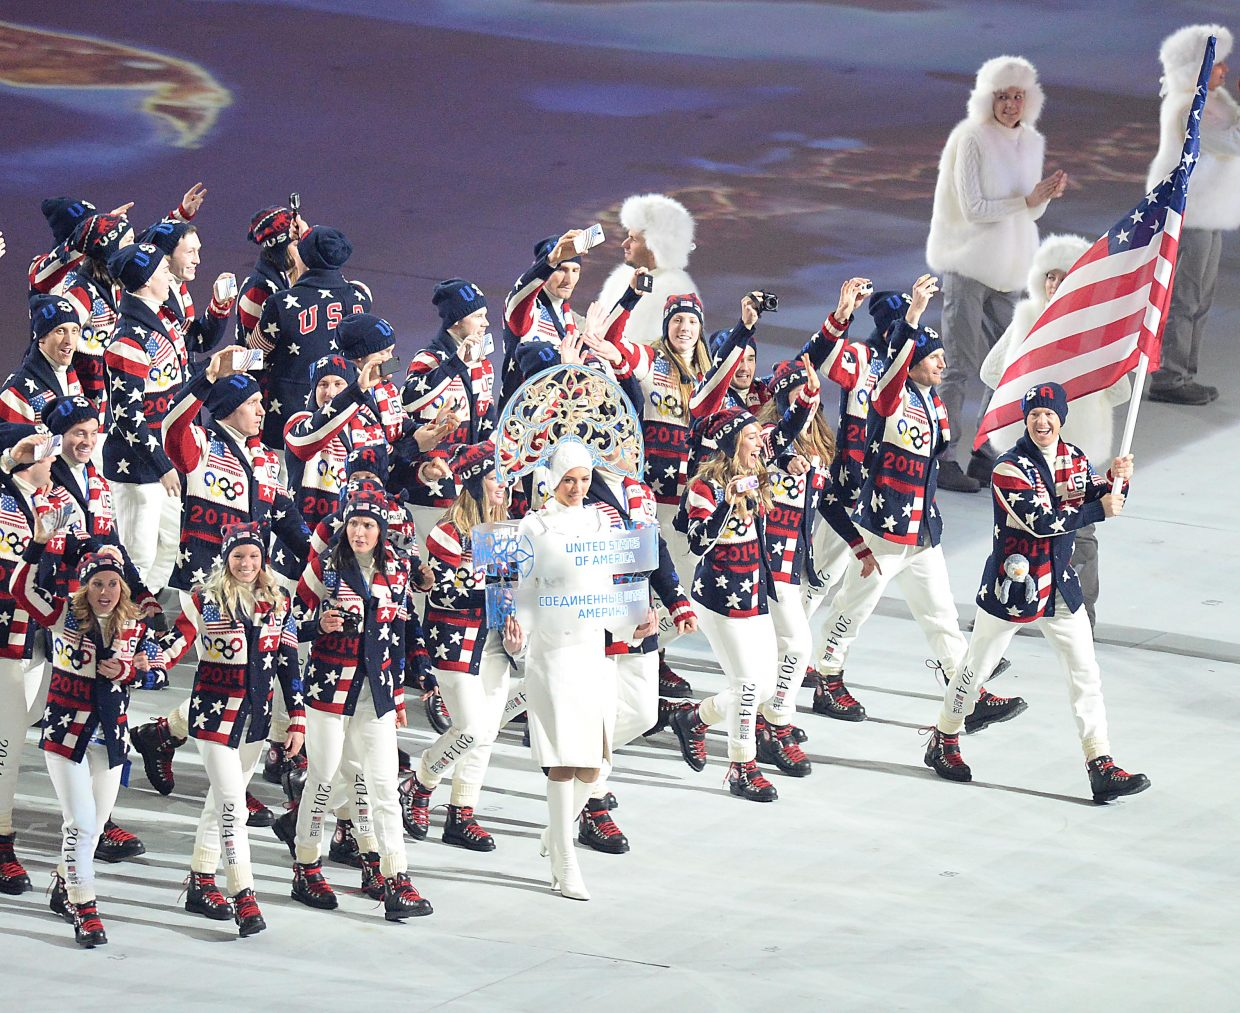 Todd Lodwick leads the U.S. Olympic Team into the 2014 Winter Olympics opening ceremony Friday.